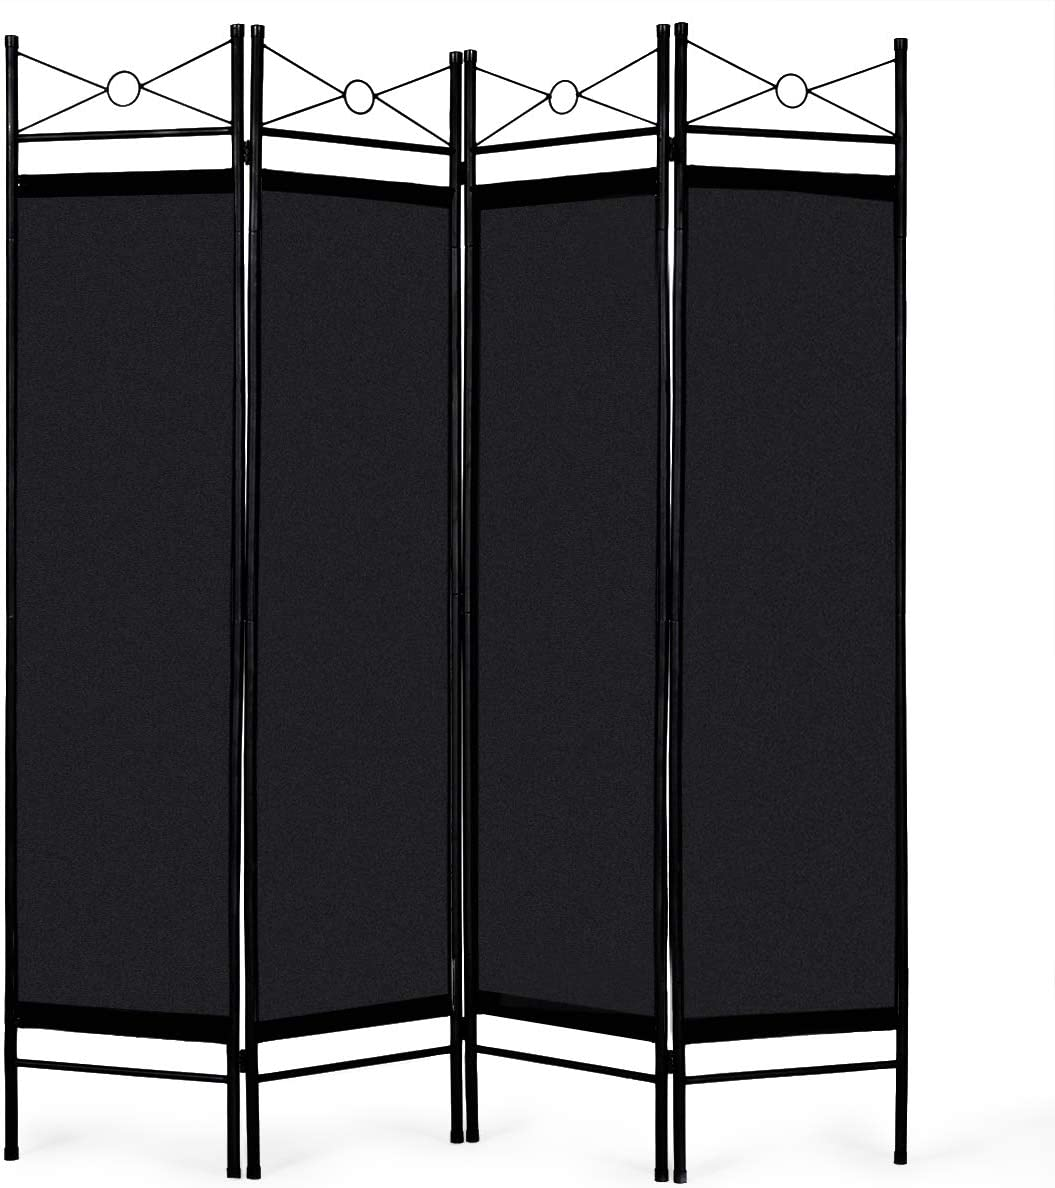 Giantex 4 Panel Room Divider Screens Steel Frame & Fabric Surface Freestanding Room Dividers and Folding Privacy Screens Home Office, Black: Furniture & Decor